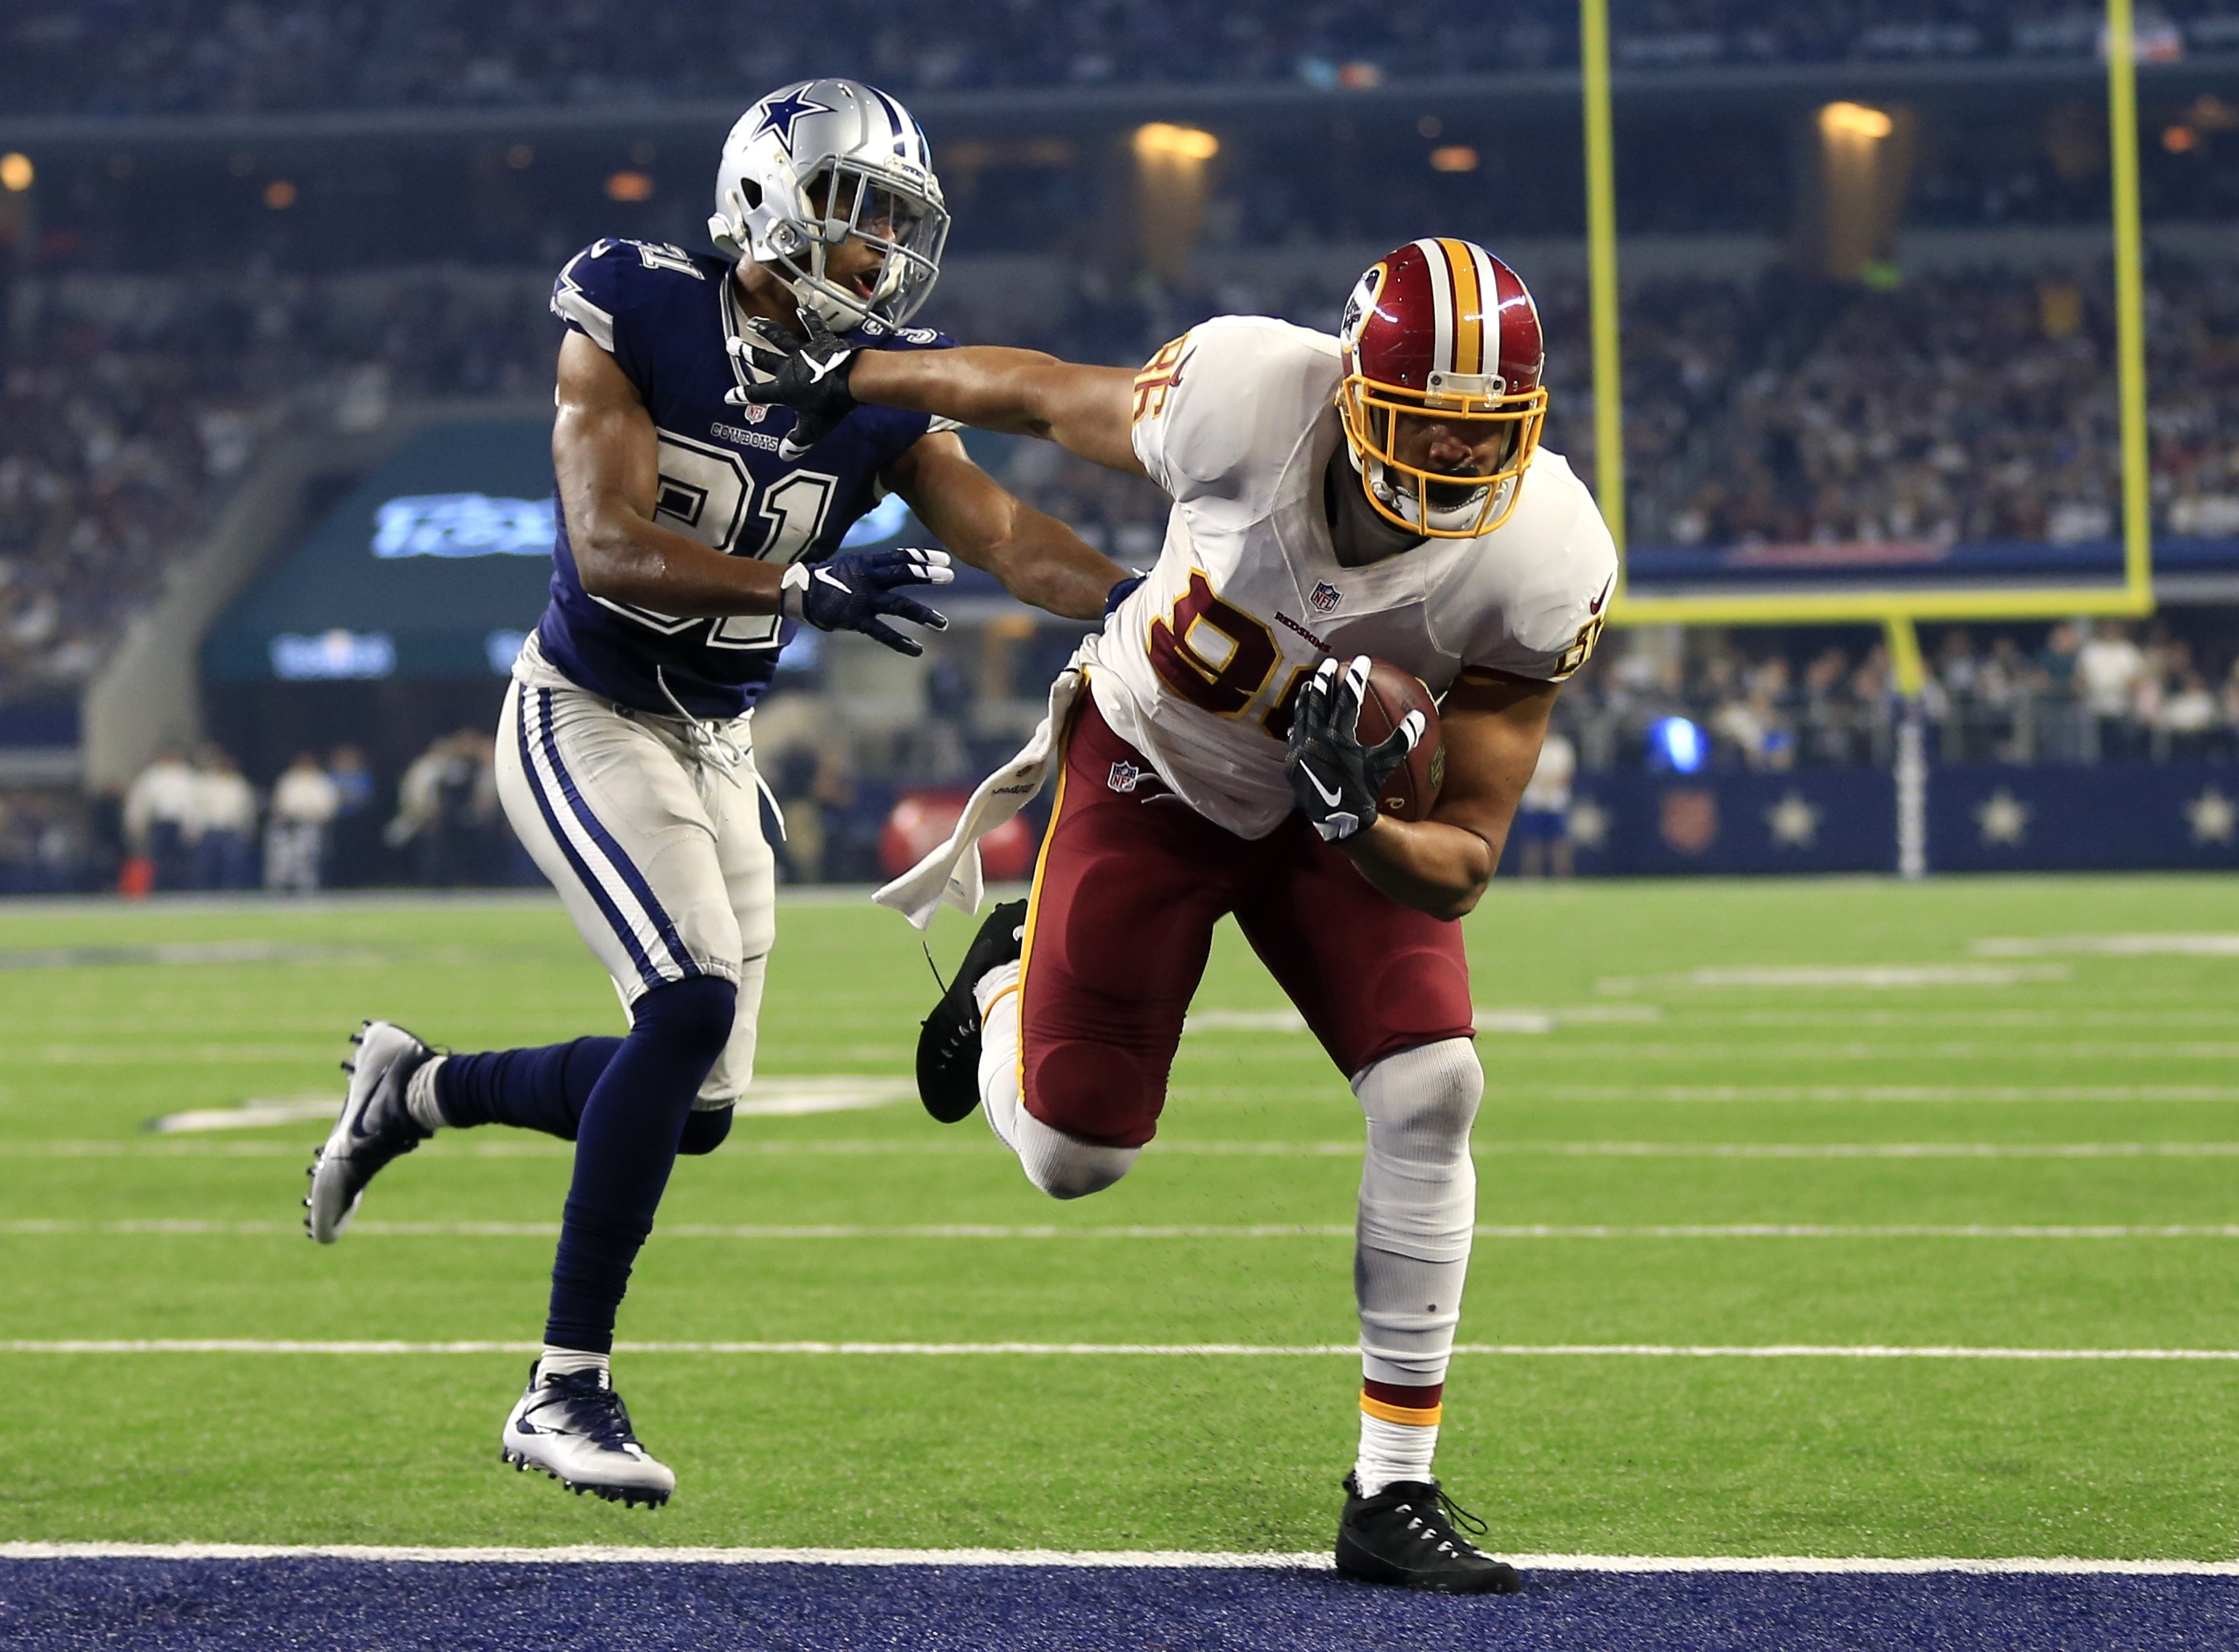 Washington Redskins tight end Jordan Reed (86) fights off pressure from Dallas Cowboys' Byron Jones (31) while entering the end zone for a touchdown in the second half of an NFL football game, Thursday, Nov. 24, 2016, in Arlington, Texas. (AP Photo/Ron Je